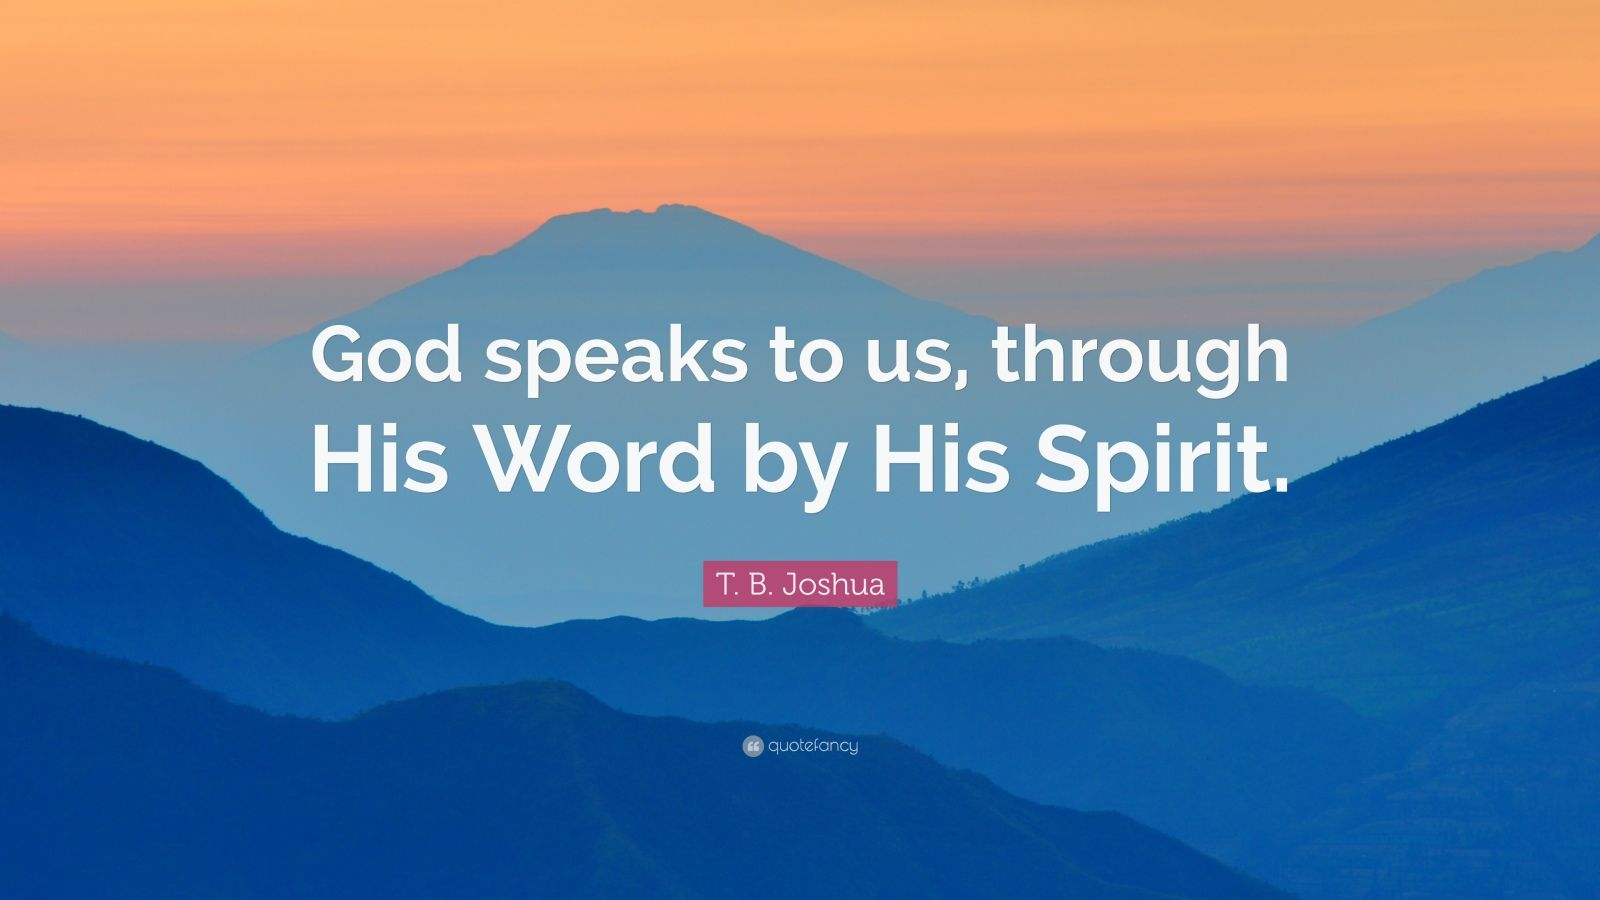 Word Of God Quotes Wallpaper T B Joshua Quote God Speaks To Us Through His Word By